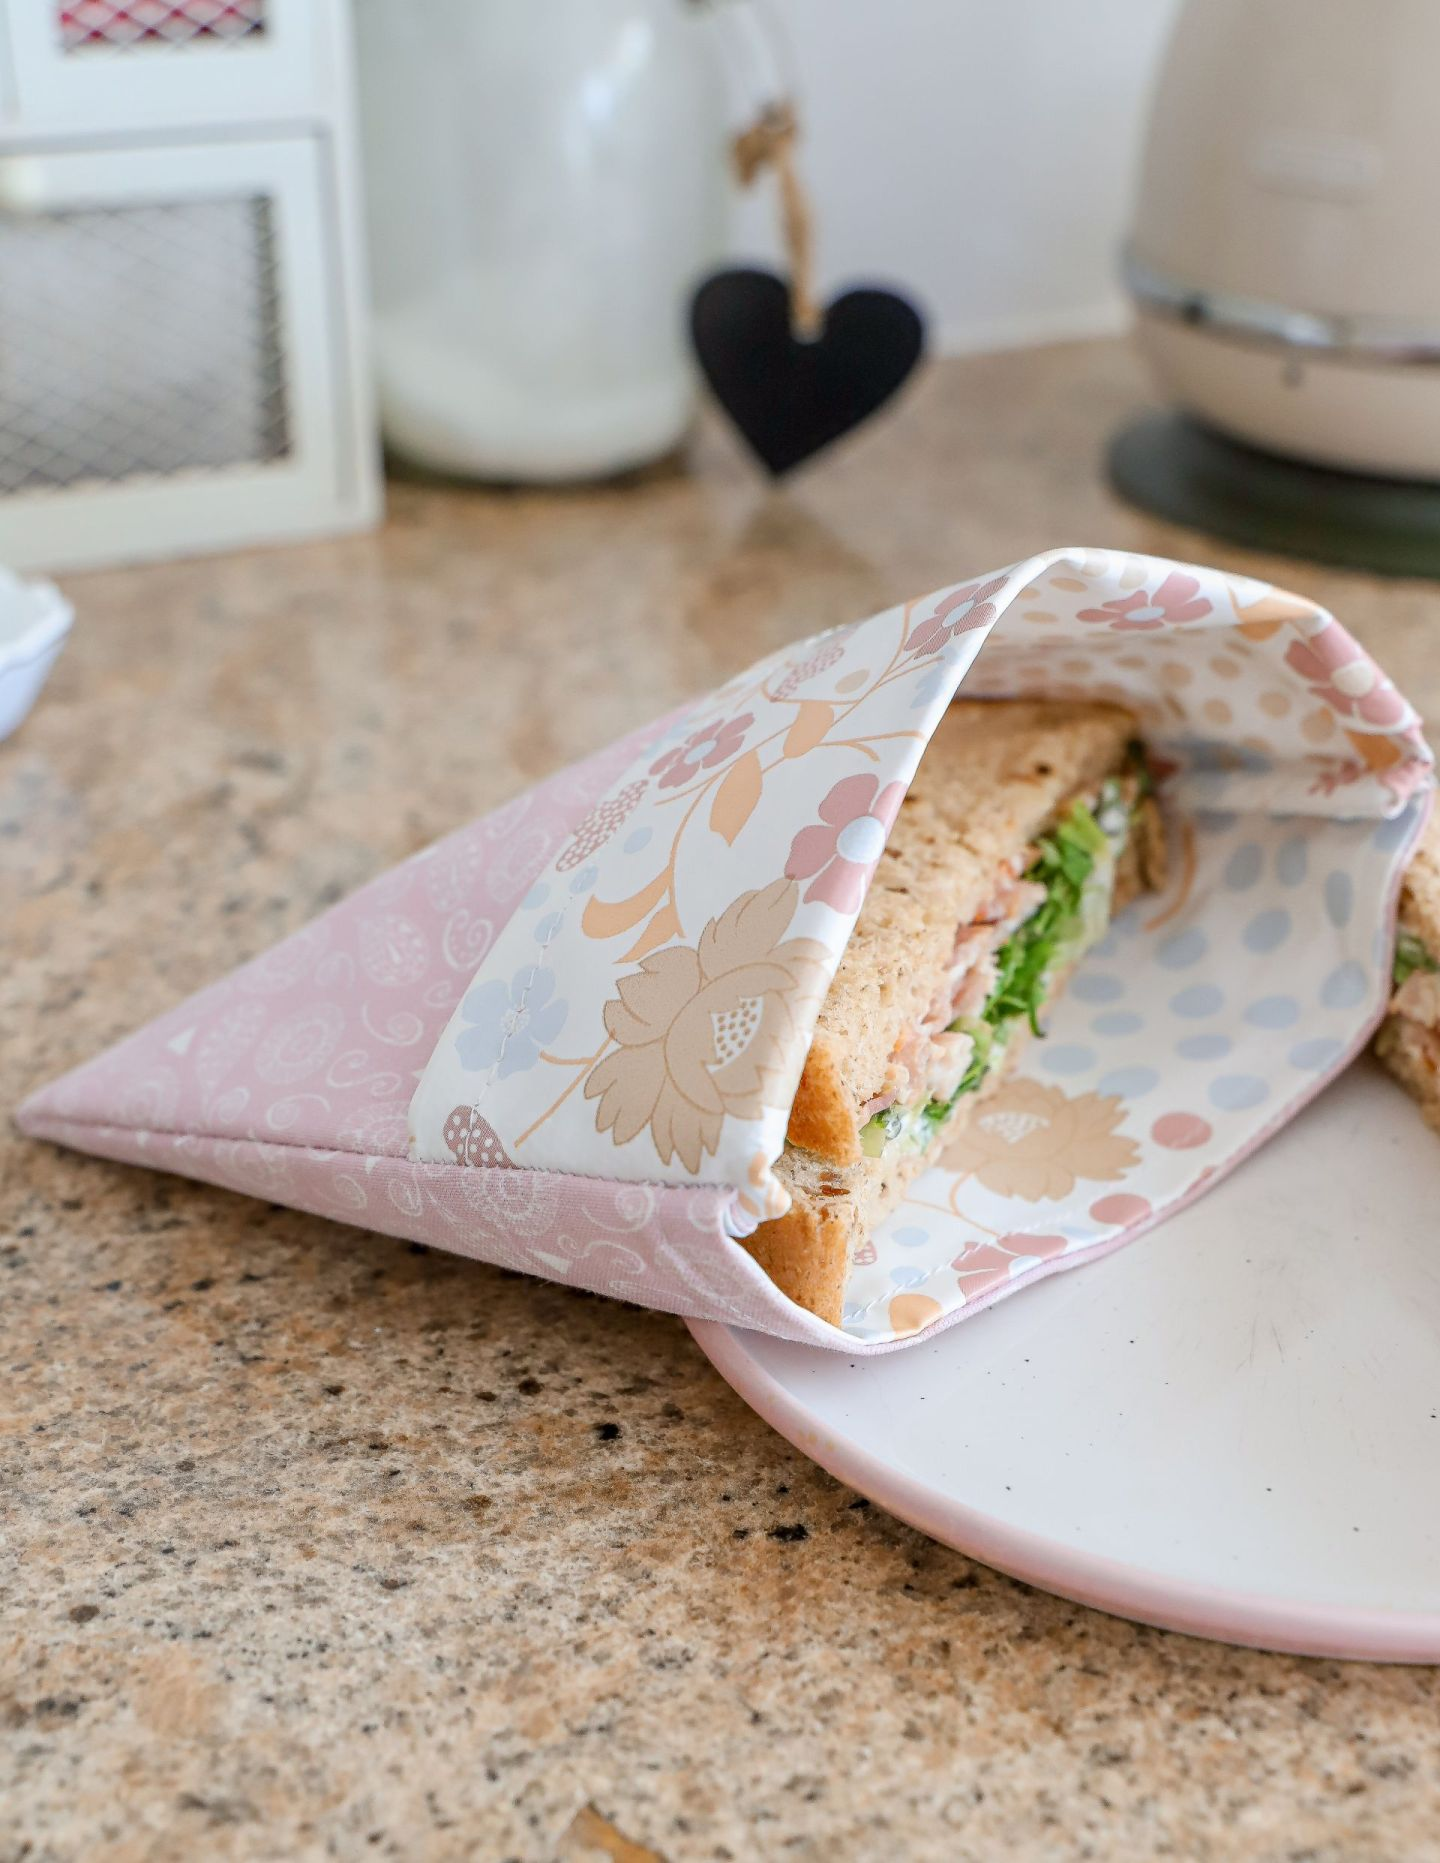 How to make a reusable sandwich bag